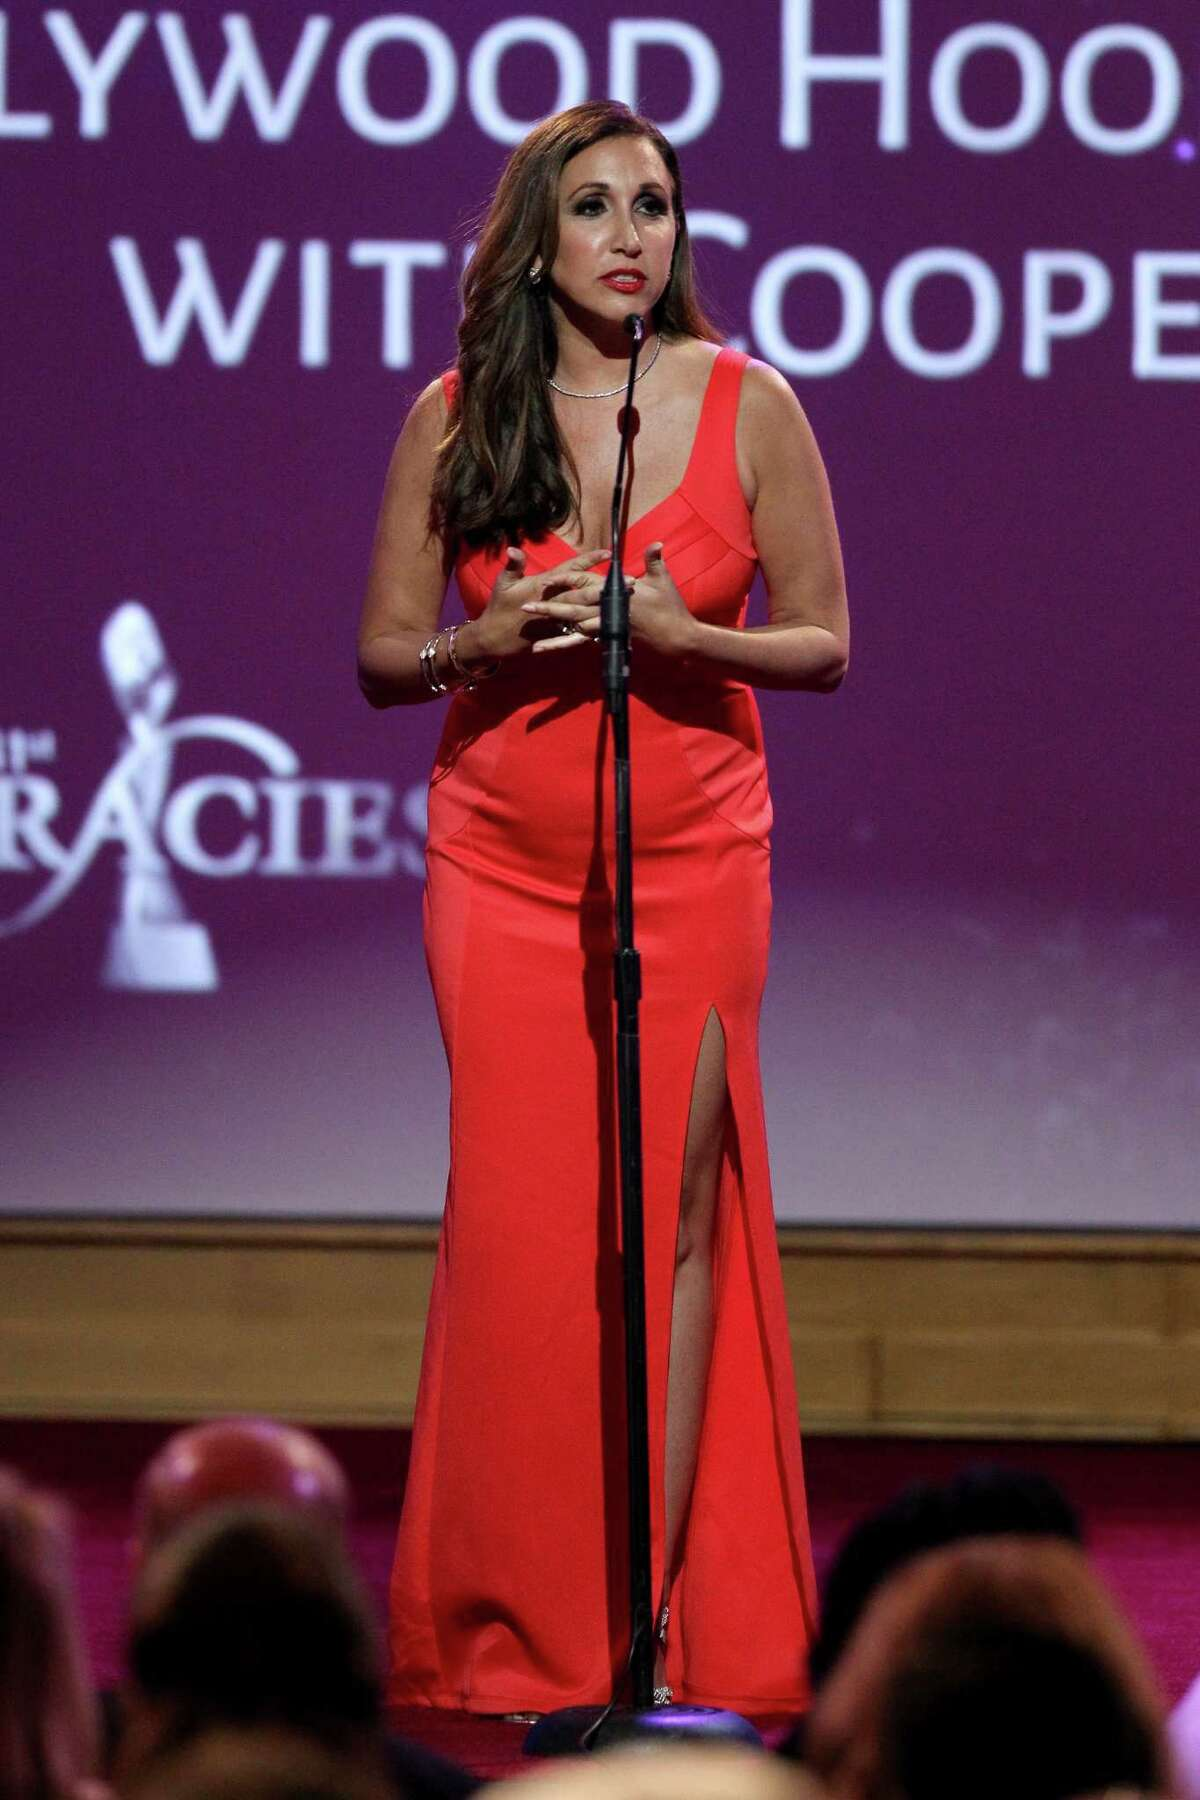 BEVERLY HILLS, CA - MAY 24: Honoree Vikki Ziegler accepts the Outstanding Podcast award onstage during the 41st Annual Gracie Awards at Regent Beverly Wilshire Hotel on May 24, 2016 in Beverly Hills, California. (Photo by Tommaso Boddi/Getty Images for Alliance for Women in Media)